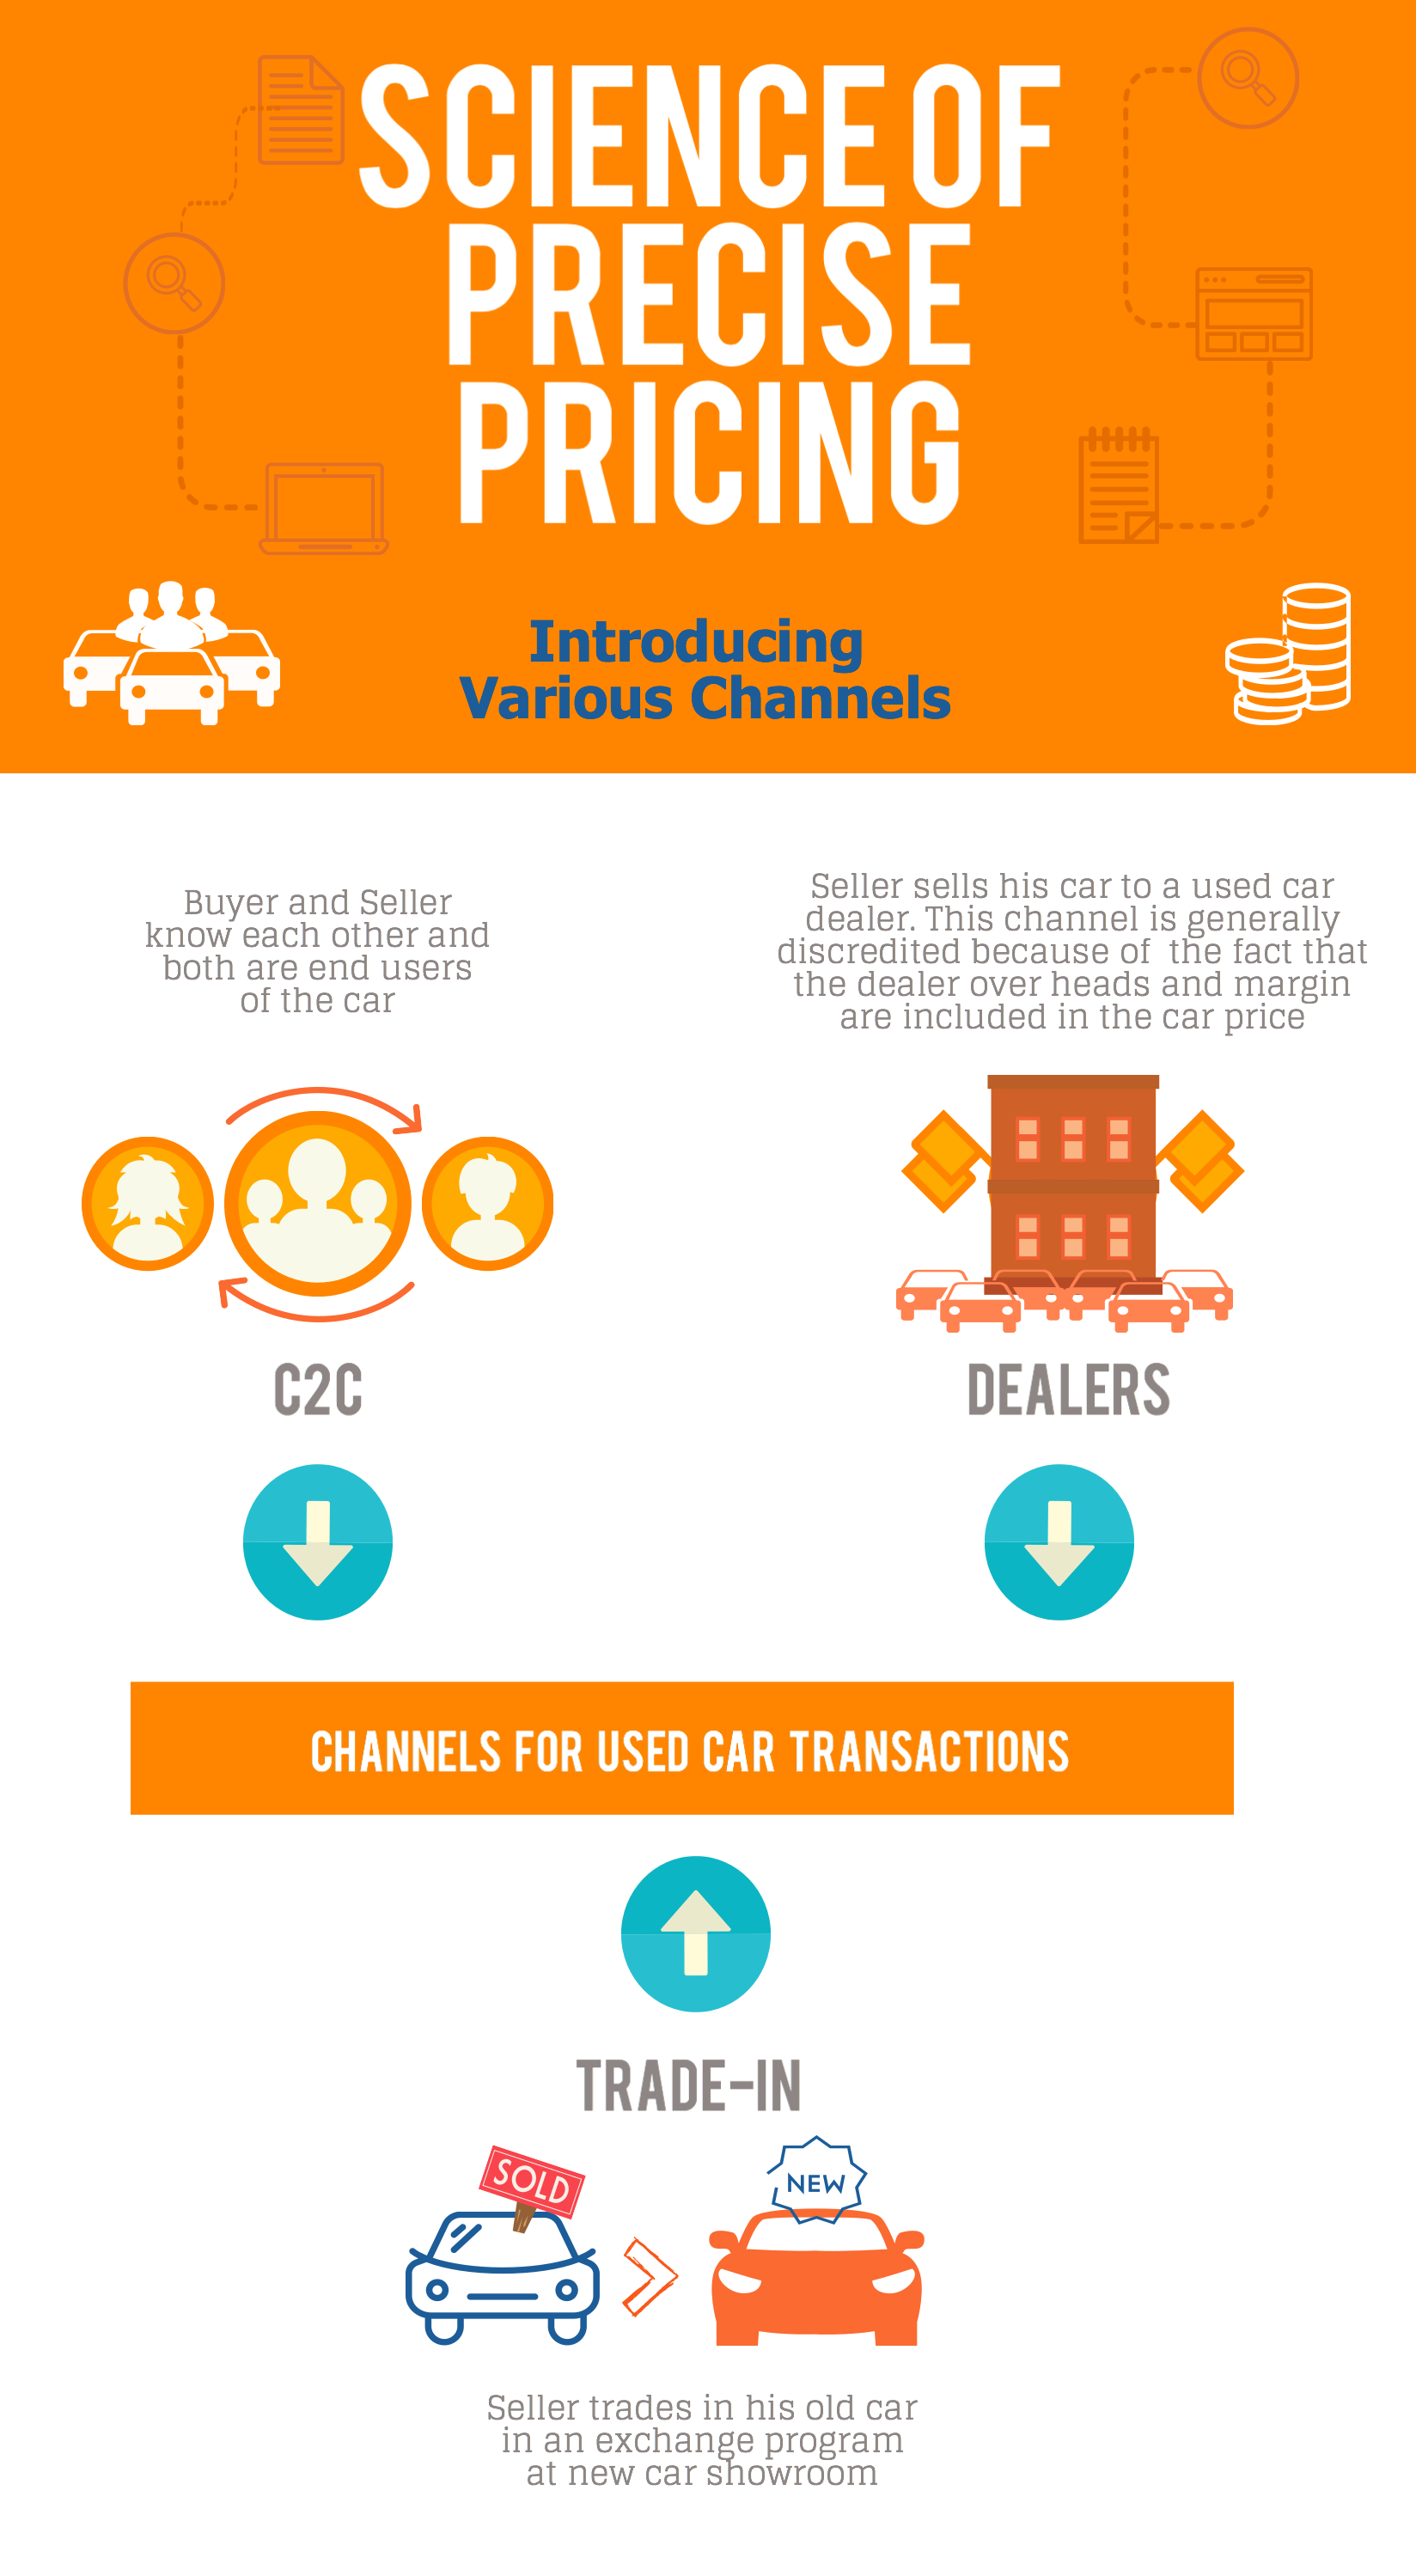 Channels of used car transactions